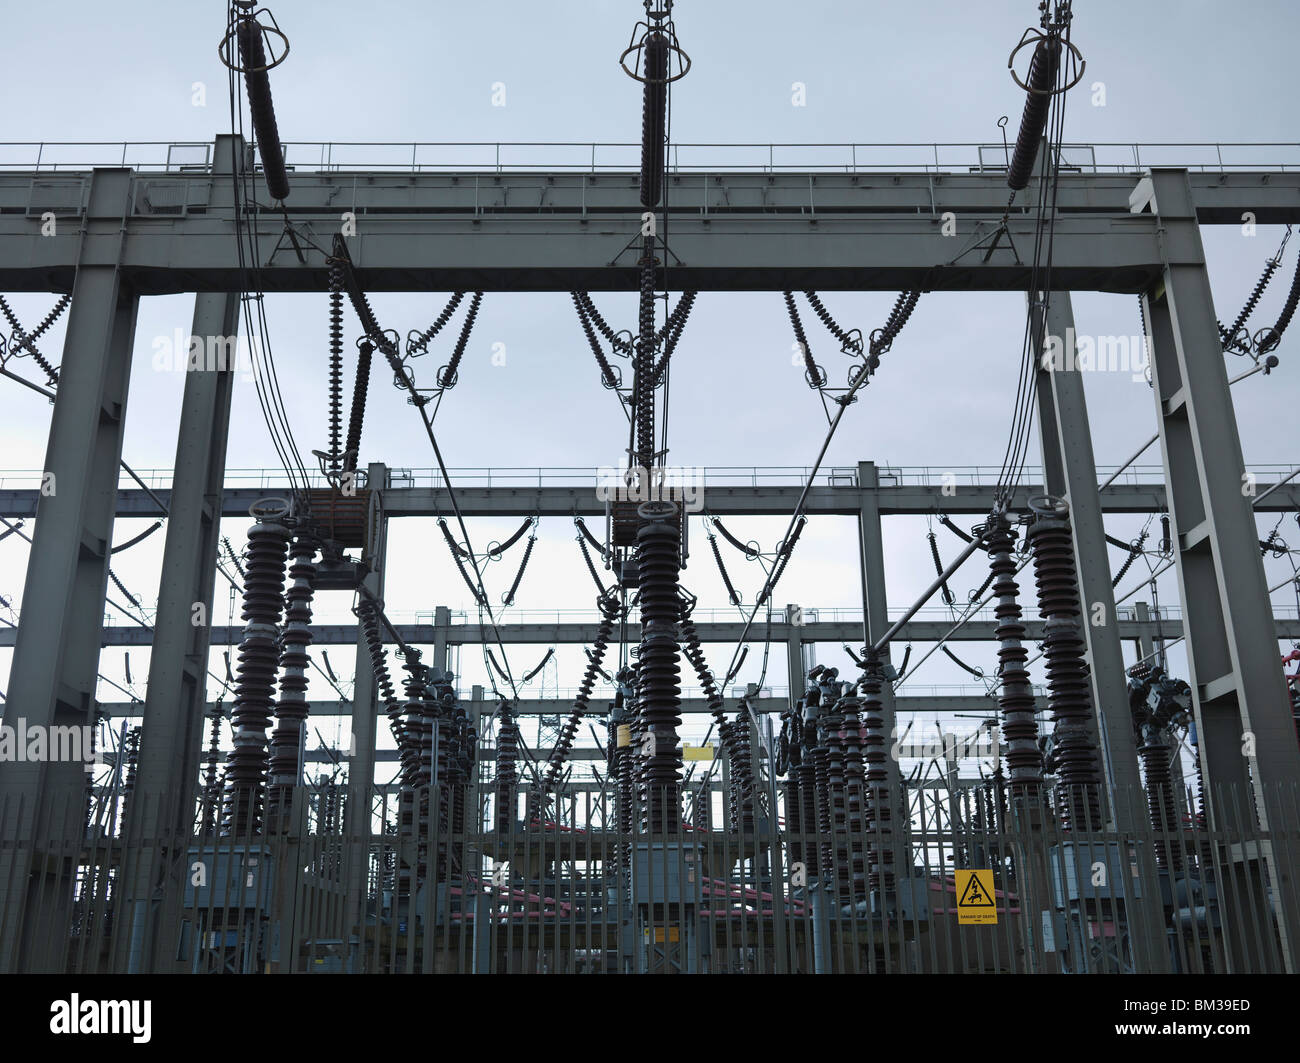 Electrical Switching Station Stock Photos & Electrical Switching ...